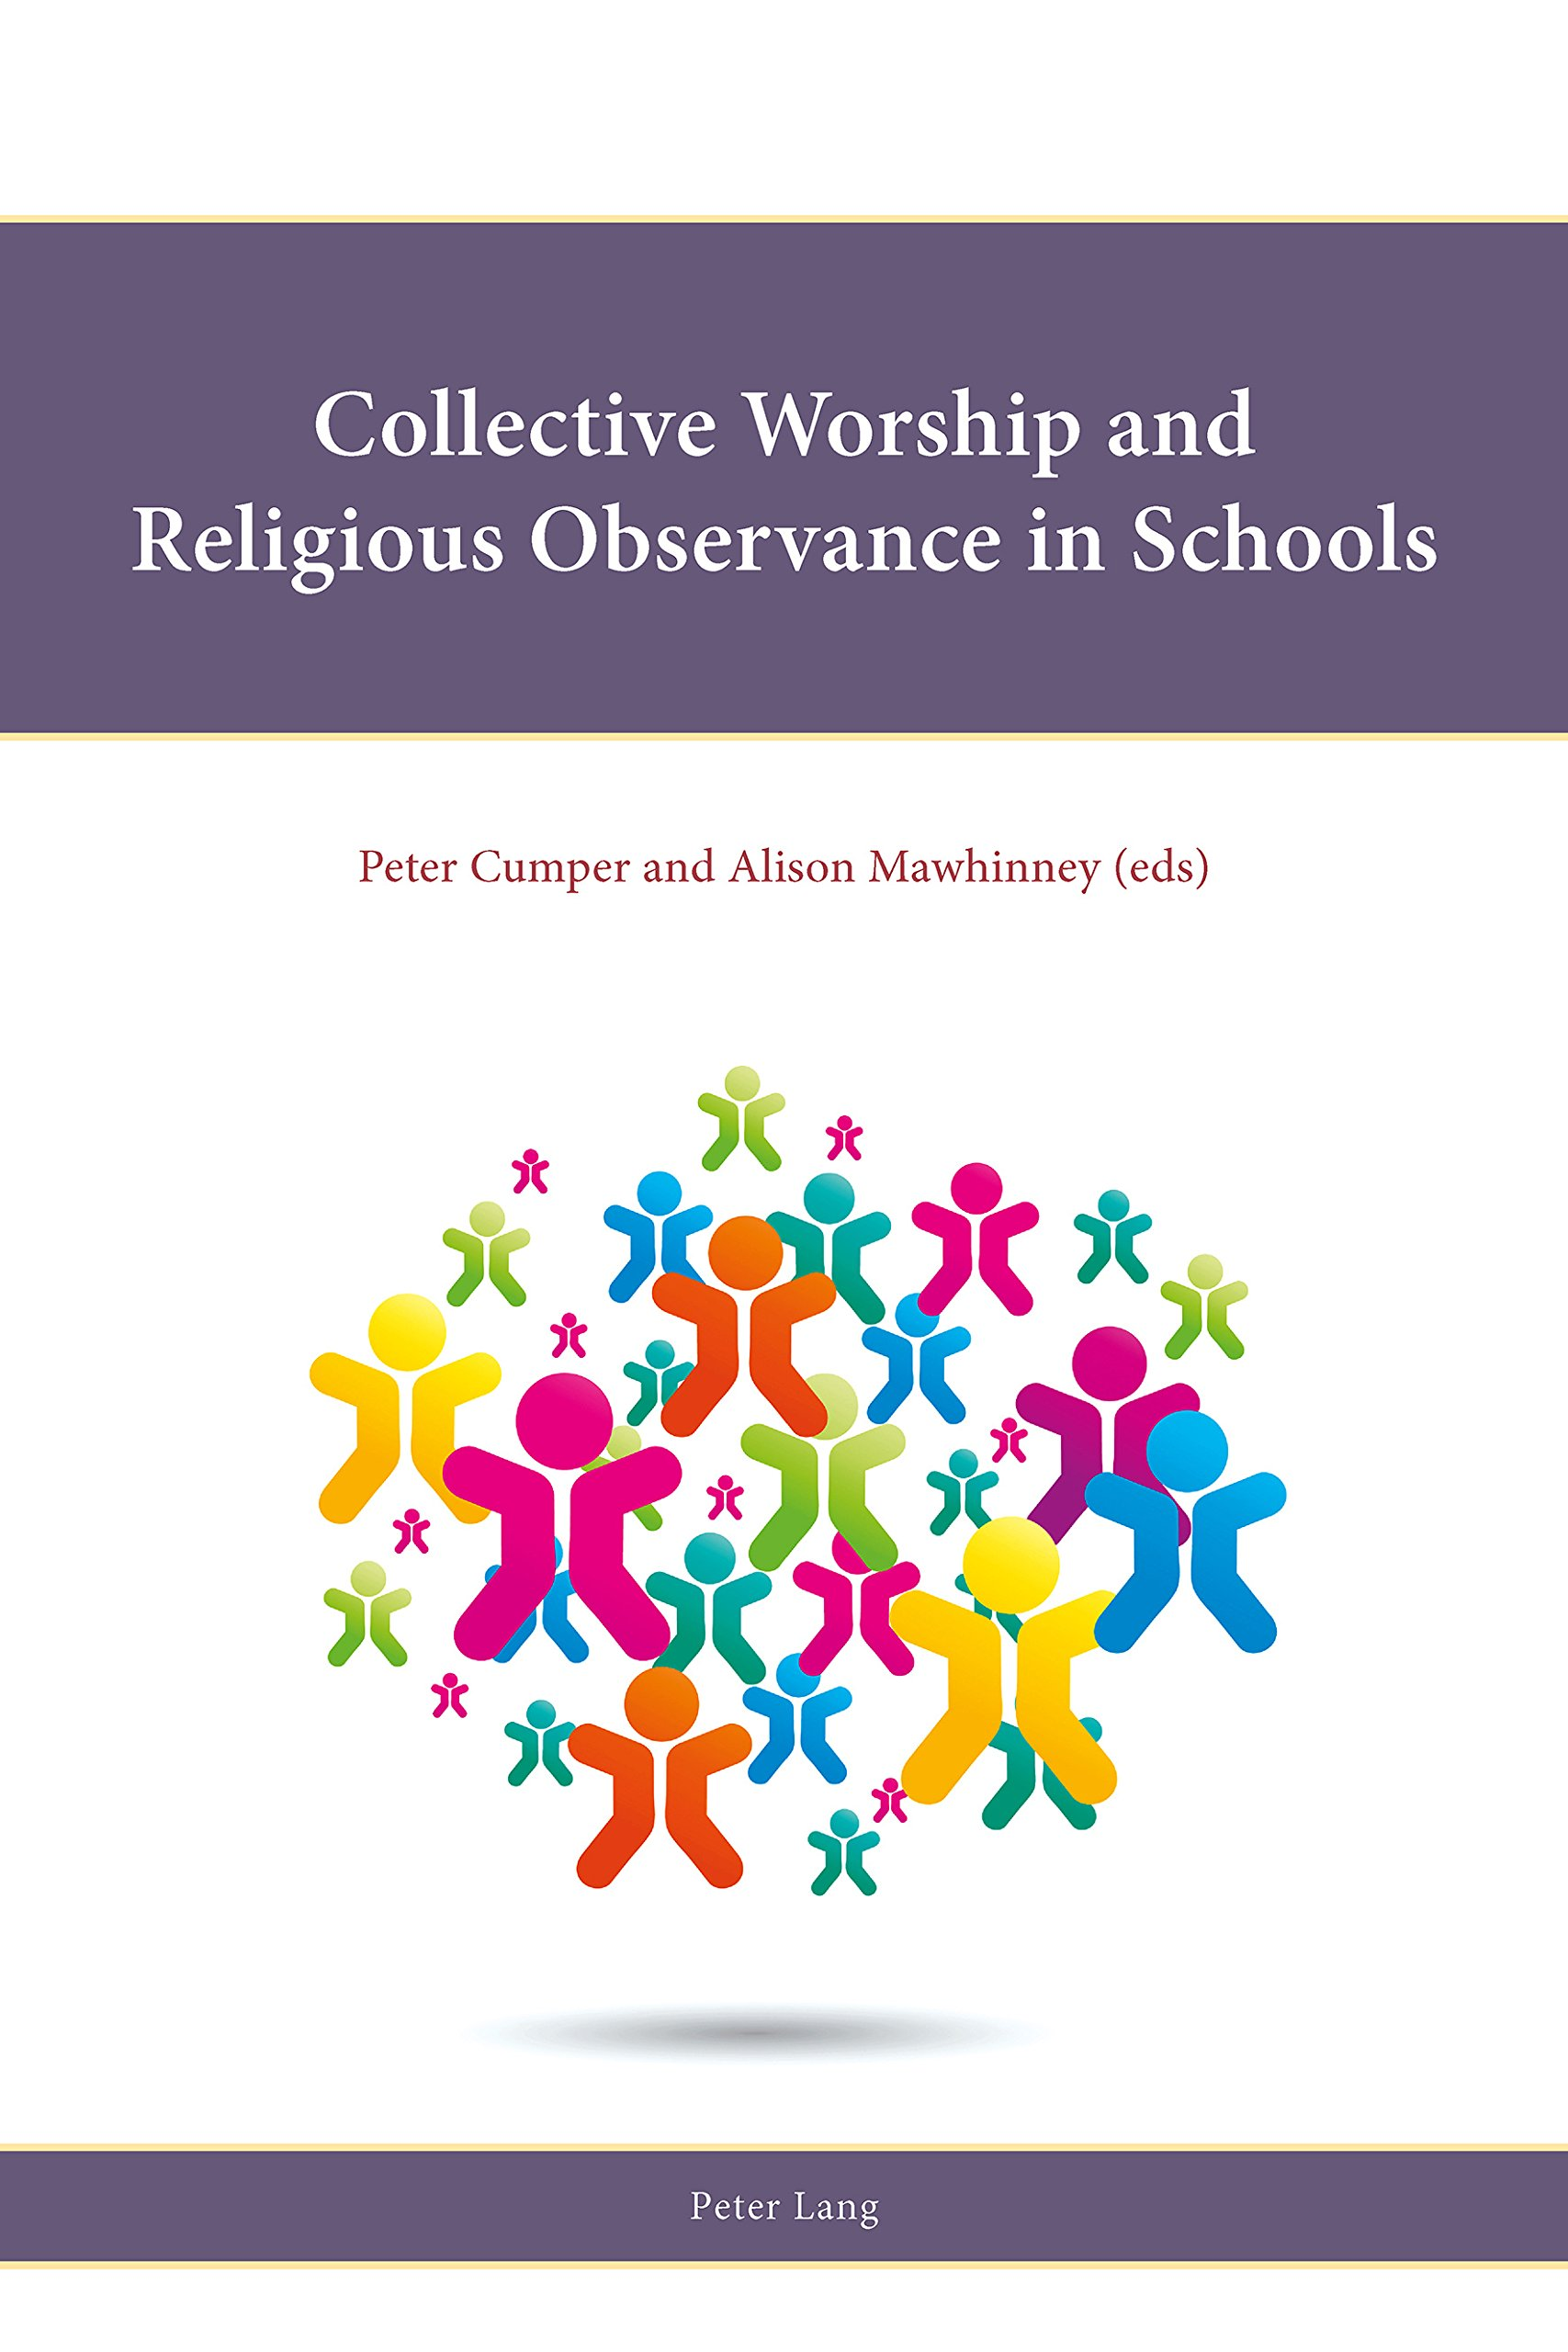 Collective Worship and Religious Observance in Schools (Religion, Education and Values) pdf